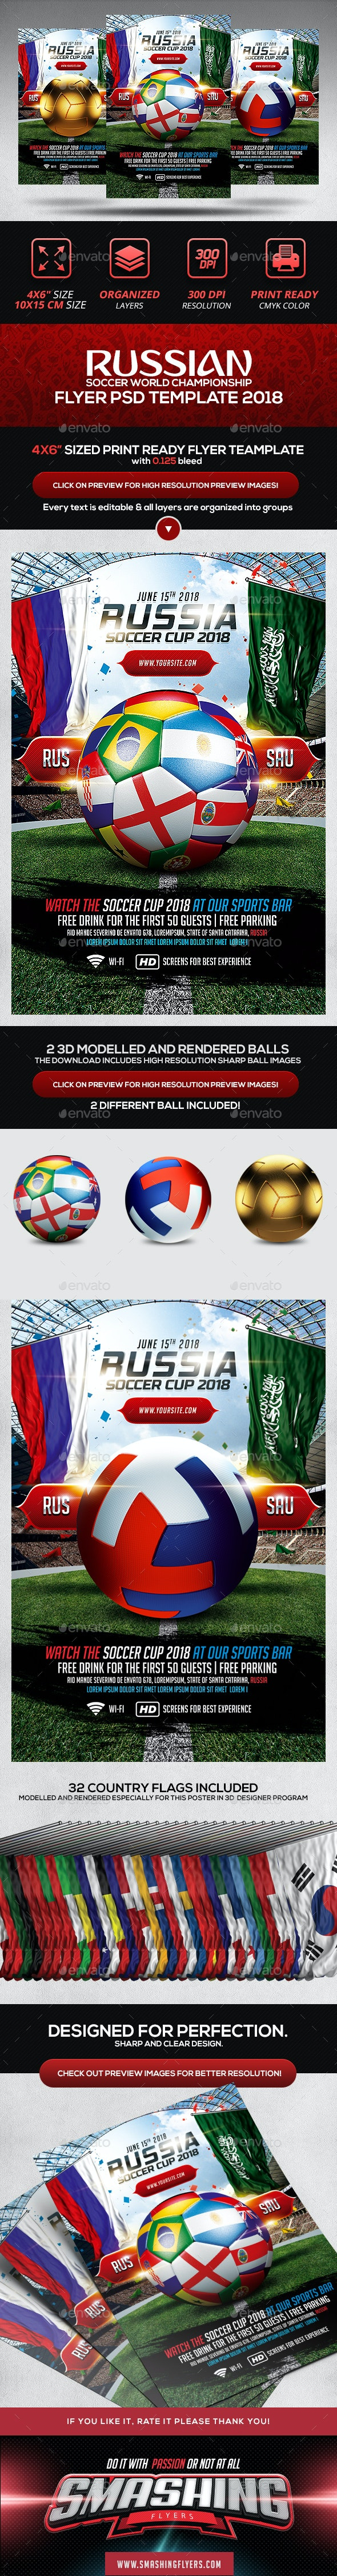 Soccer World Championship Flyer Template - Sports Events